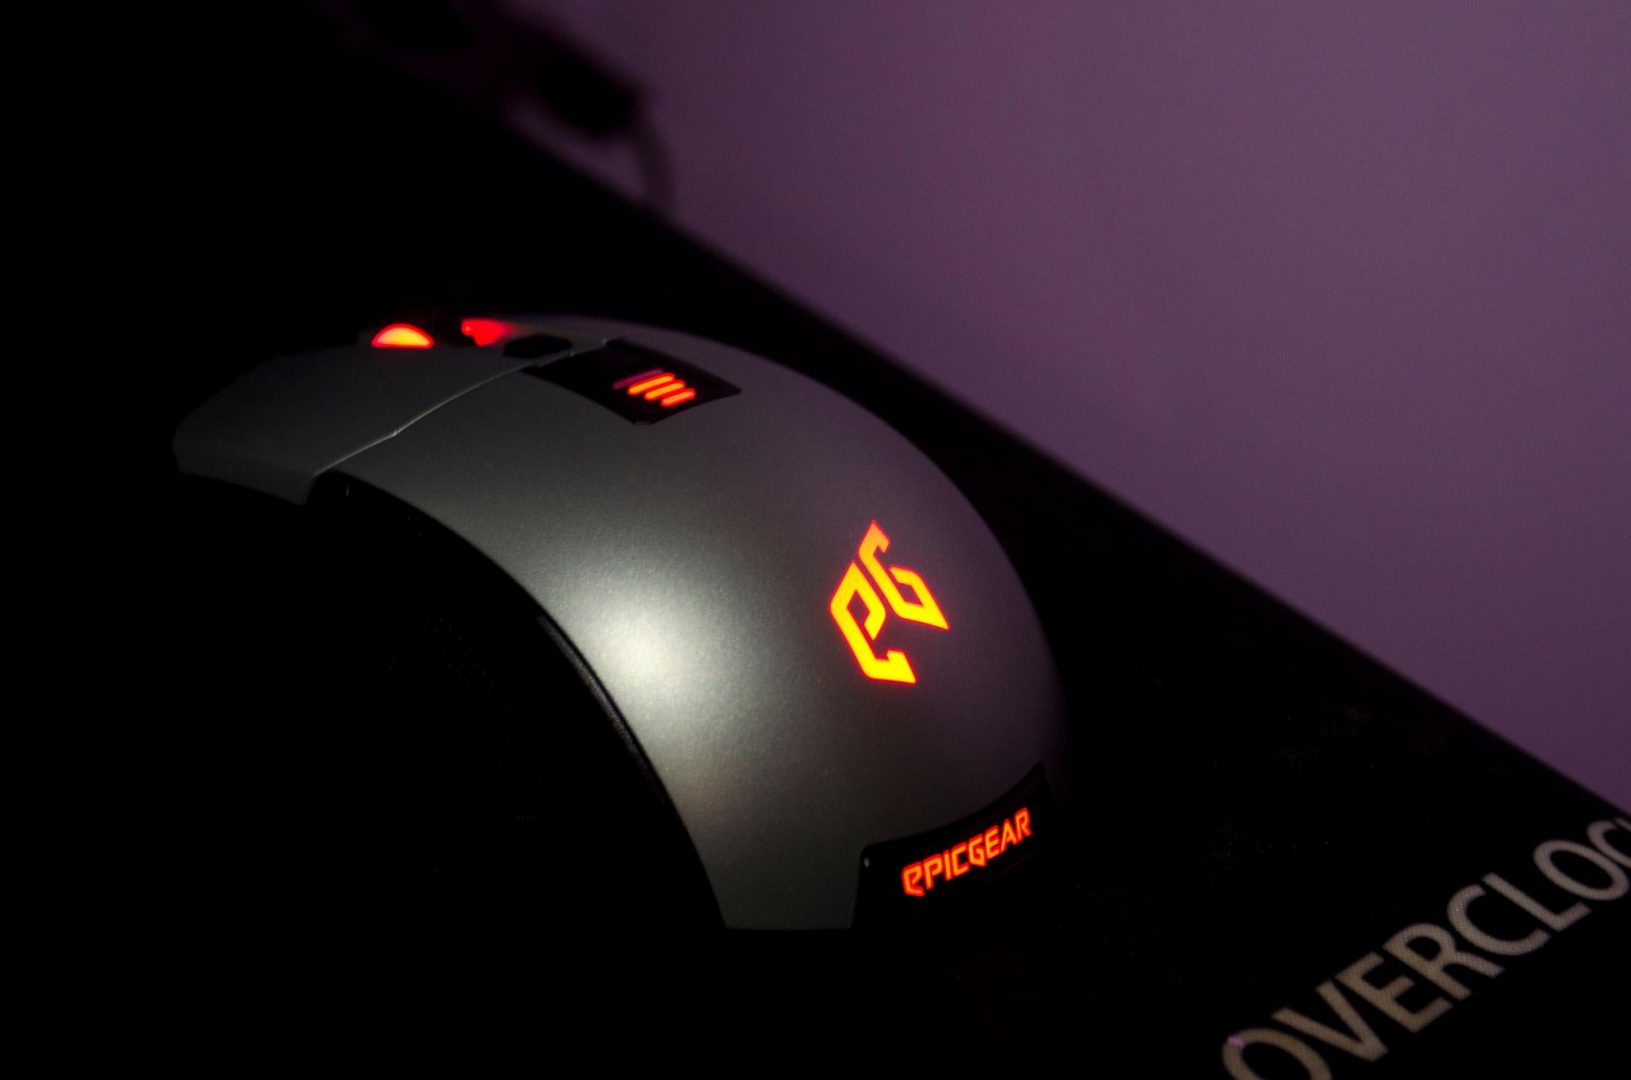 epic gear morpha x gaming mouse_2